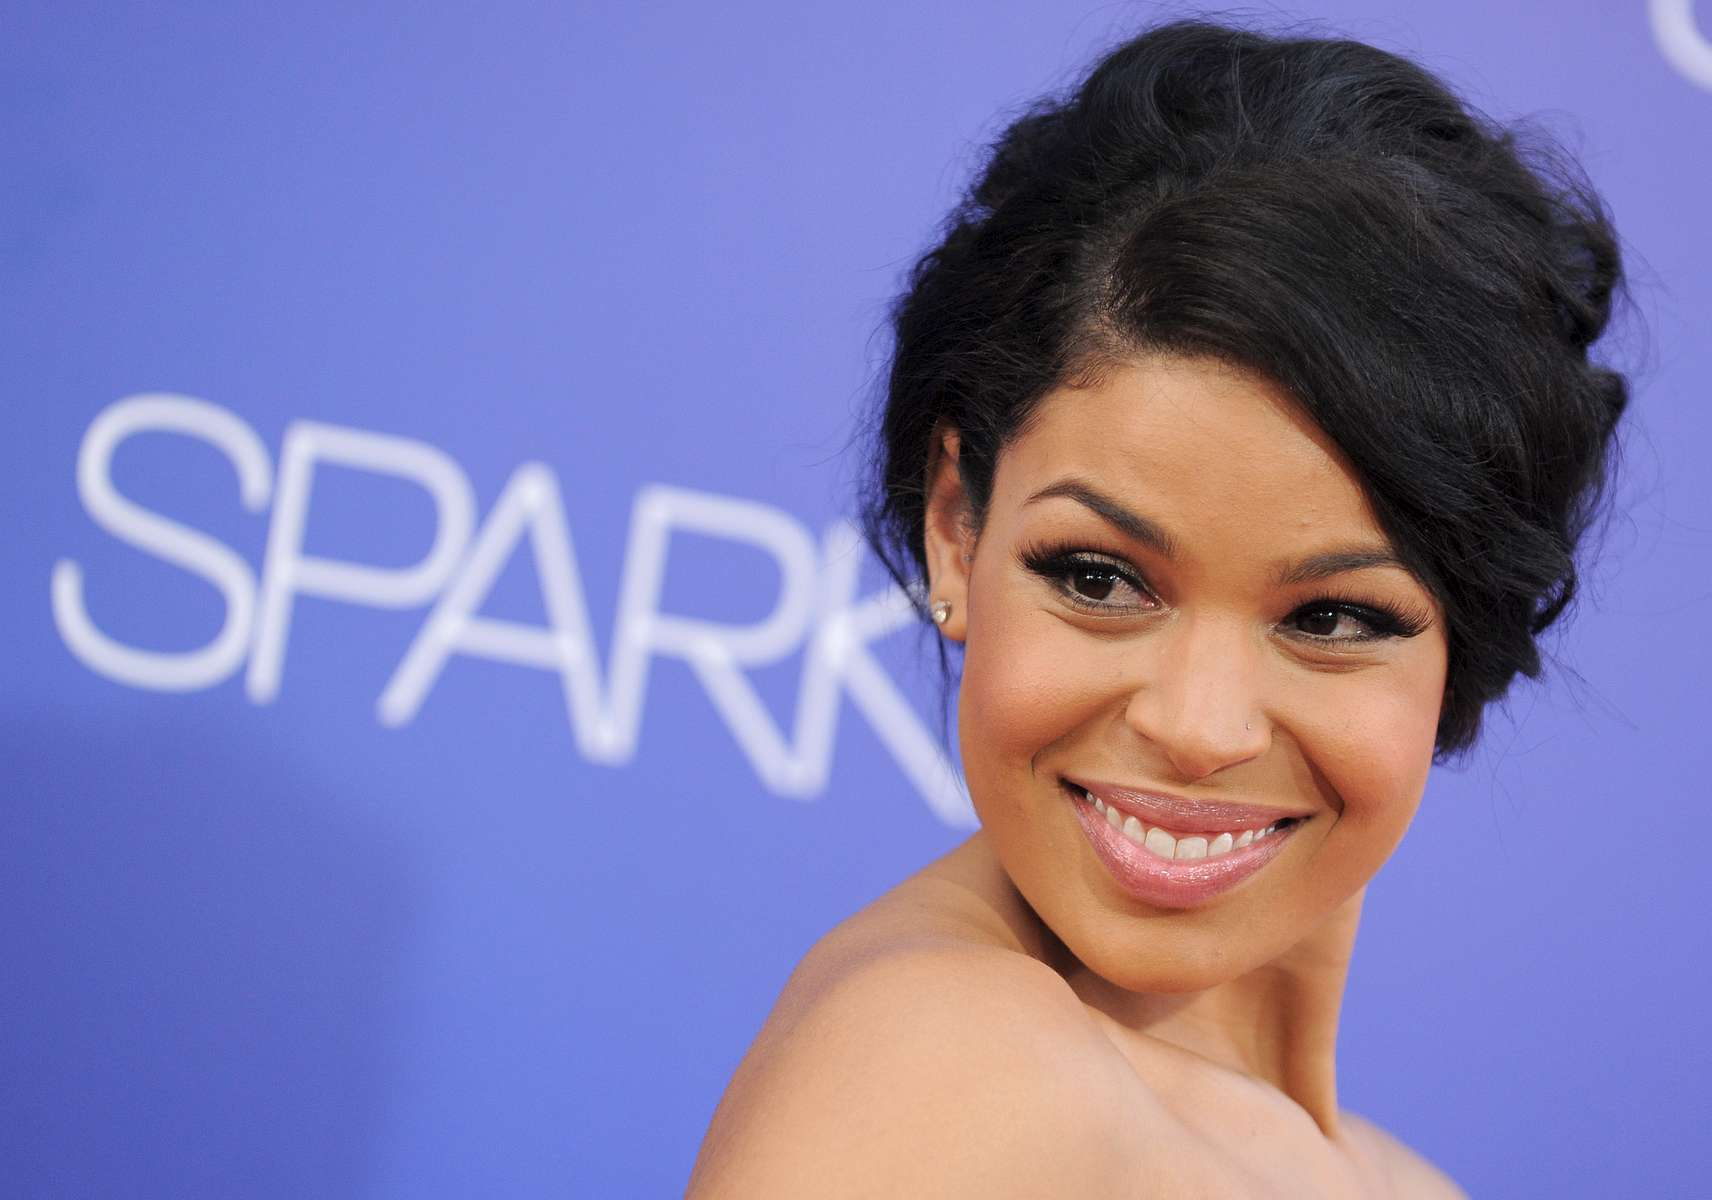 Jordin Sparks attends the Los Angeles premiere of \{quote}Sparkle\{quote} at Grauman\'s Chinese Theatre on Thursday, Aug. 16, 2012, in Los Angeles. (Photo by Jordan Strauss/Invision/AP)